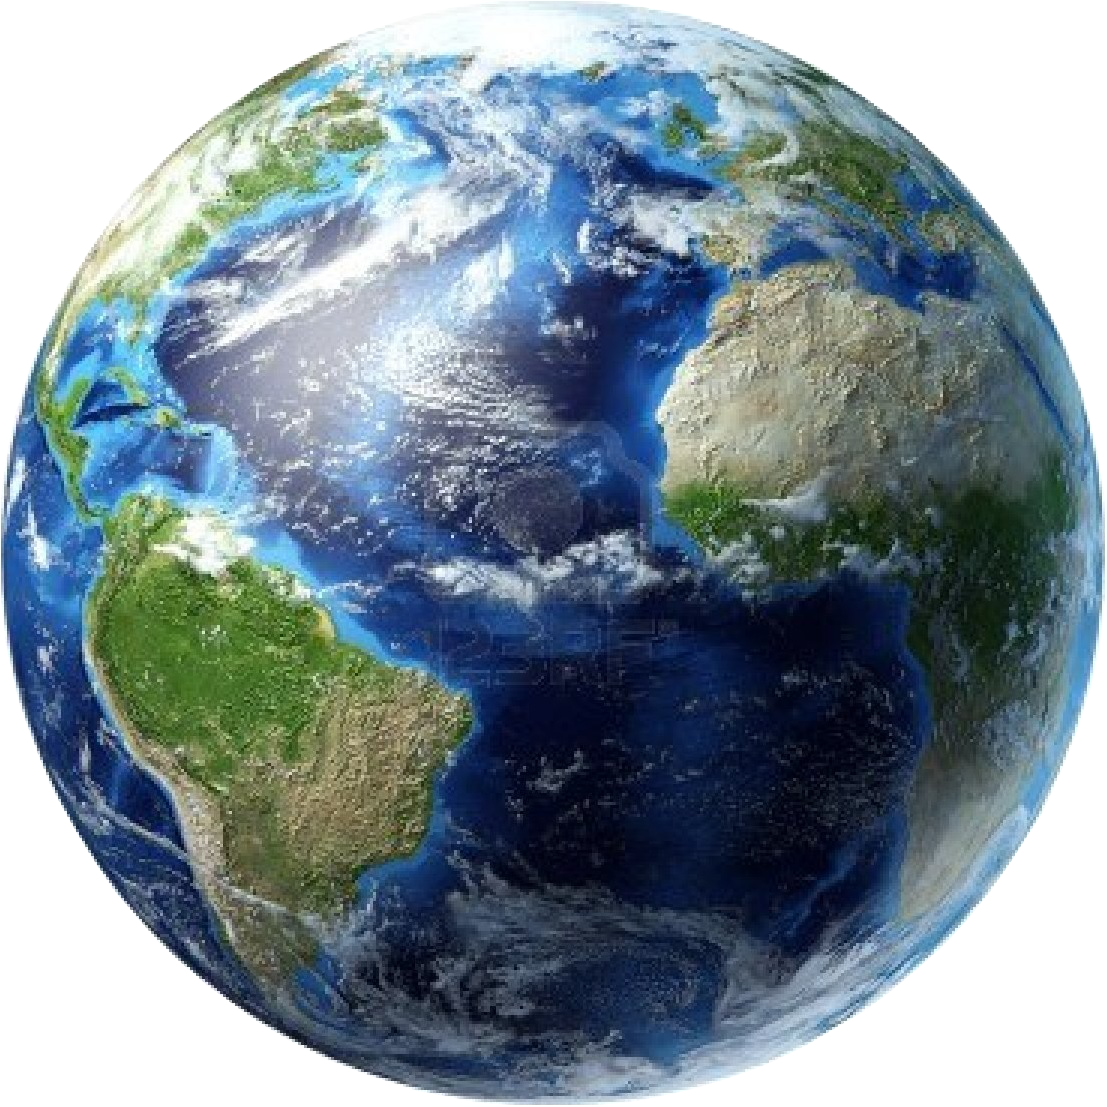 Planets hd png. Earth images free download